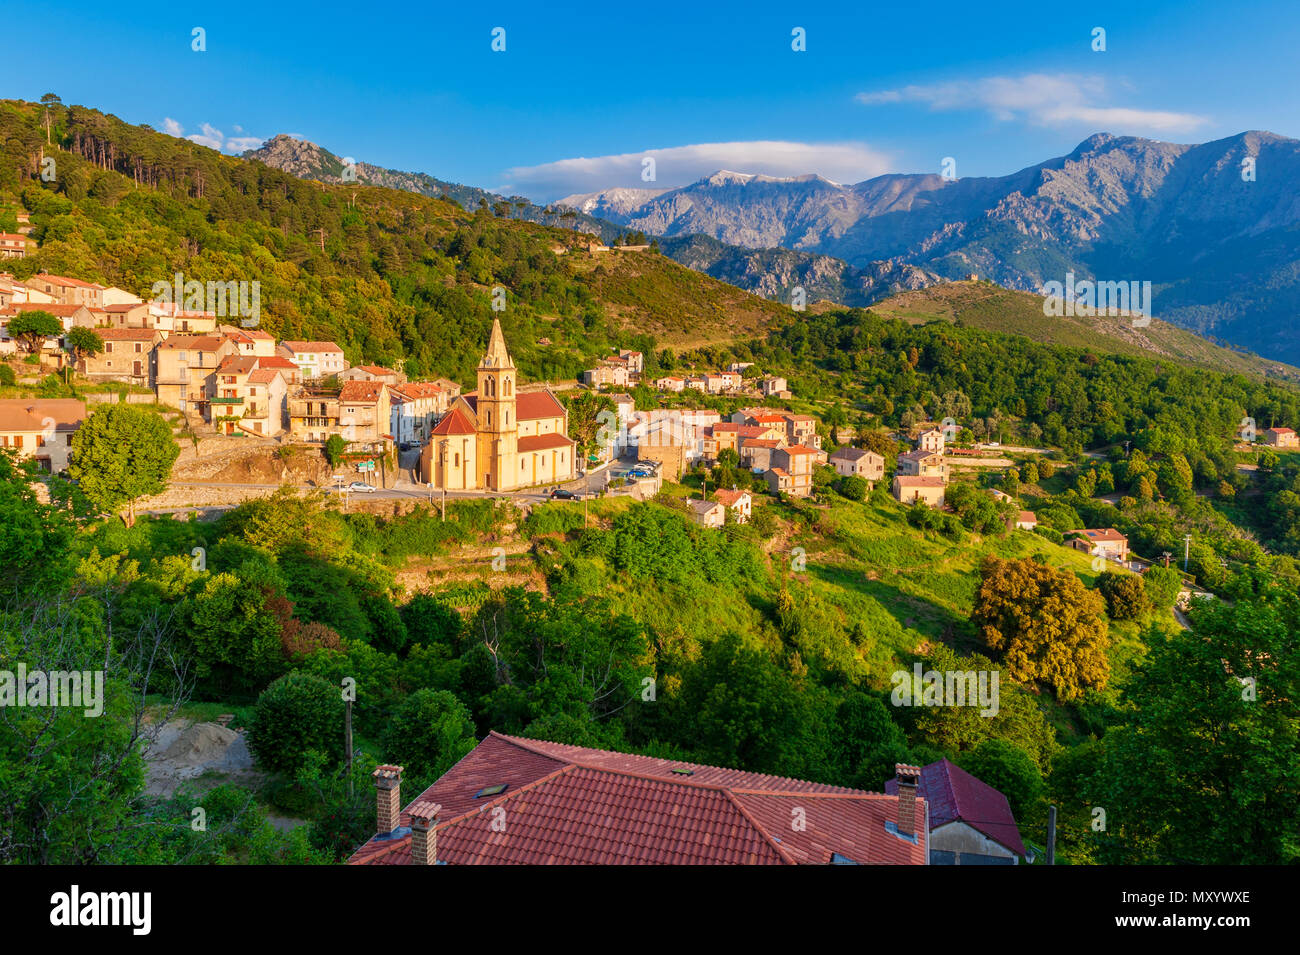 Village of Vivario, Corsica, France - Stock Image